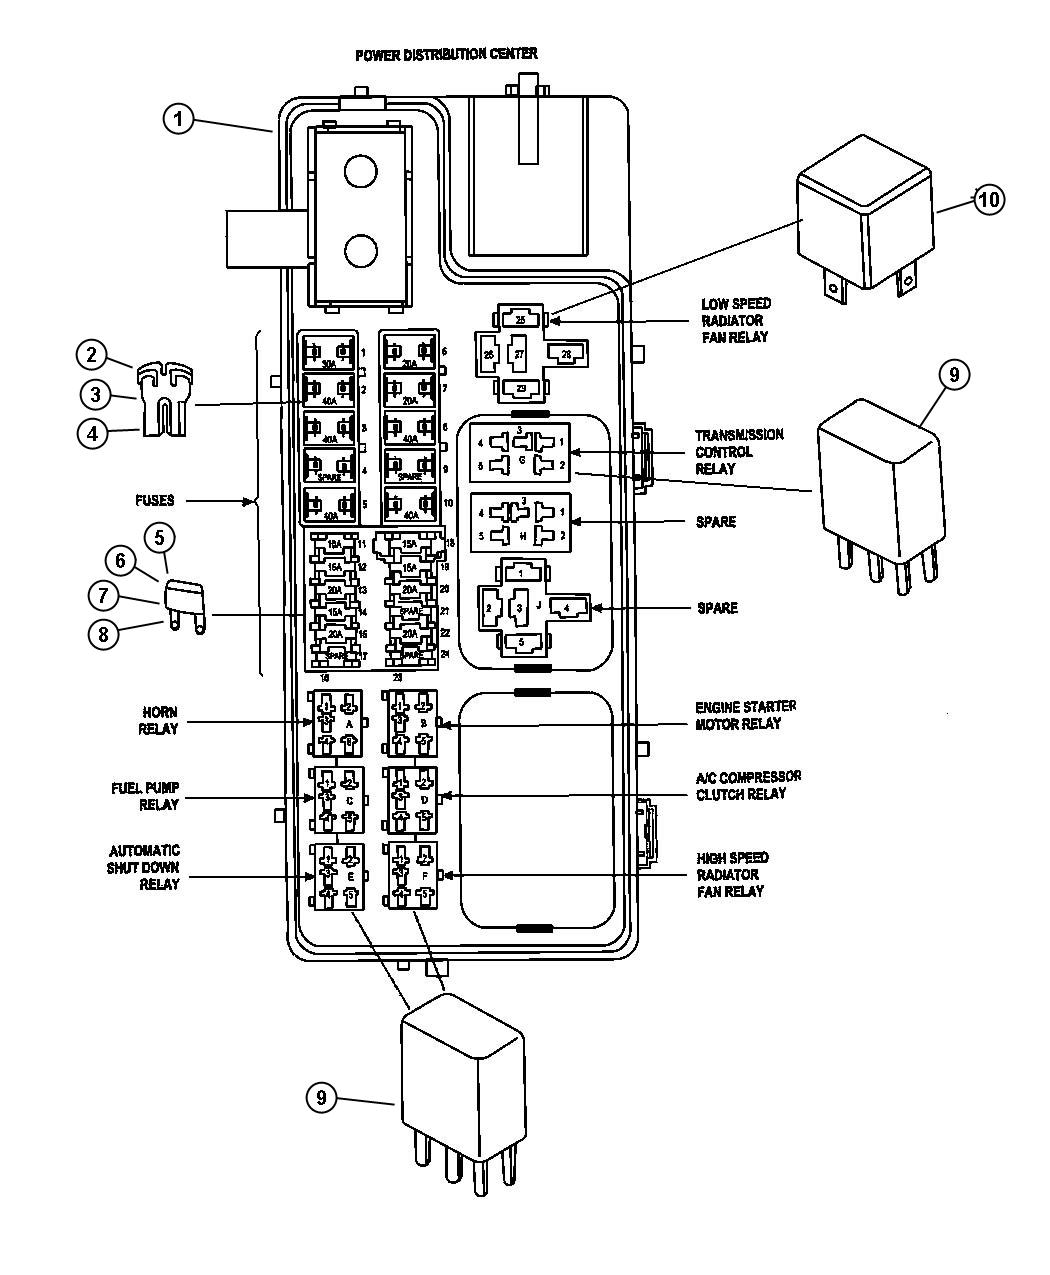 2005 Pt Cruiser Fuse Box Diagram, 2005, Free Engine Image